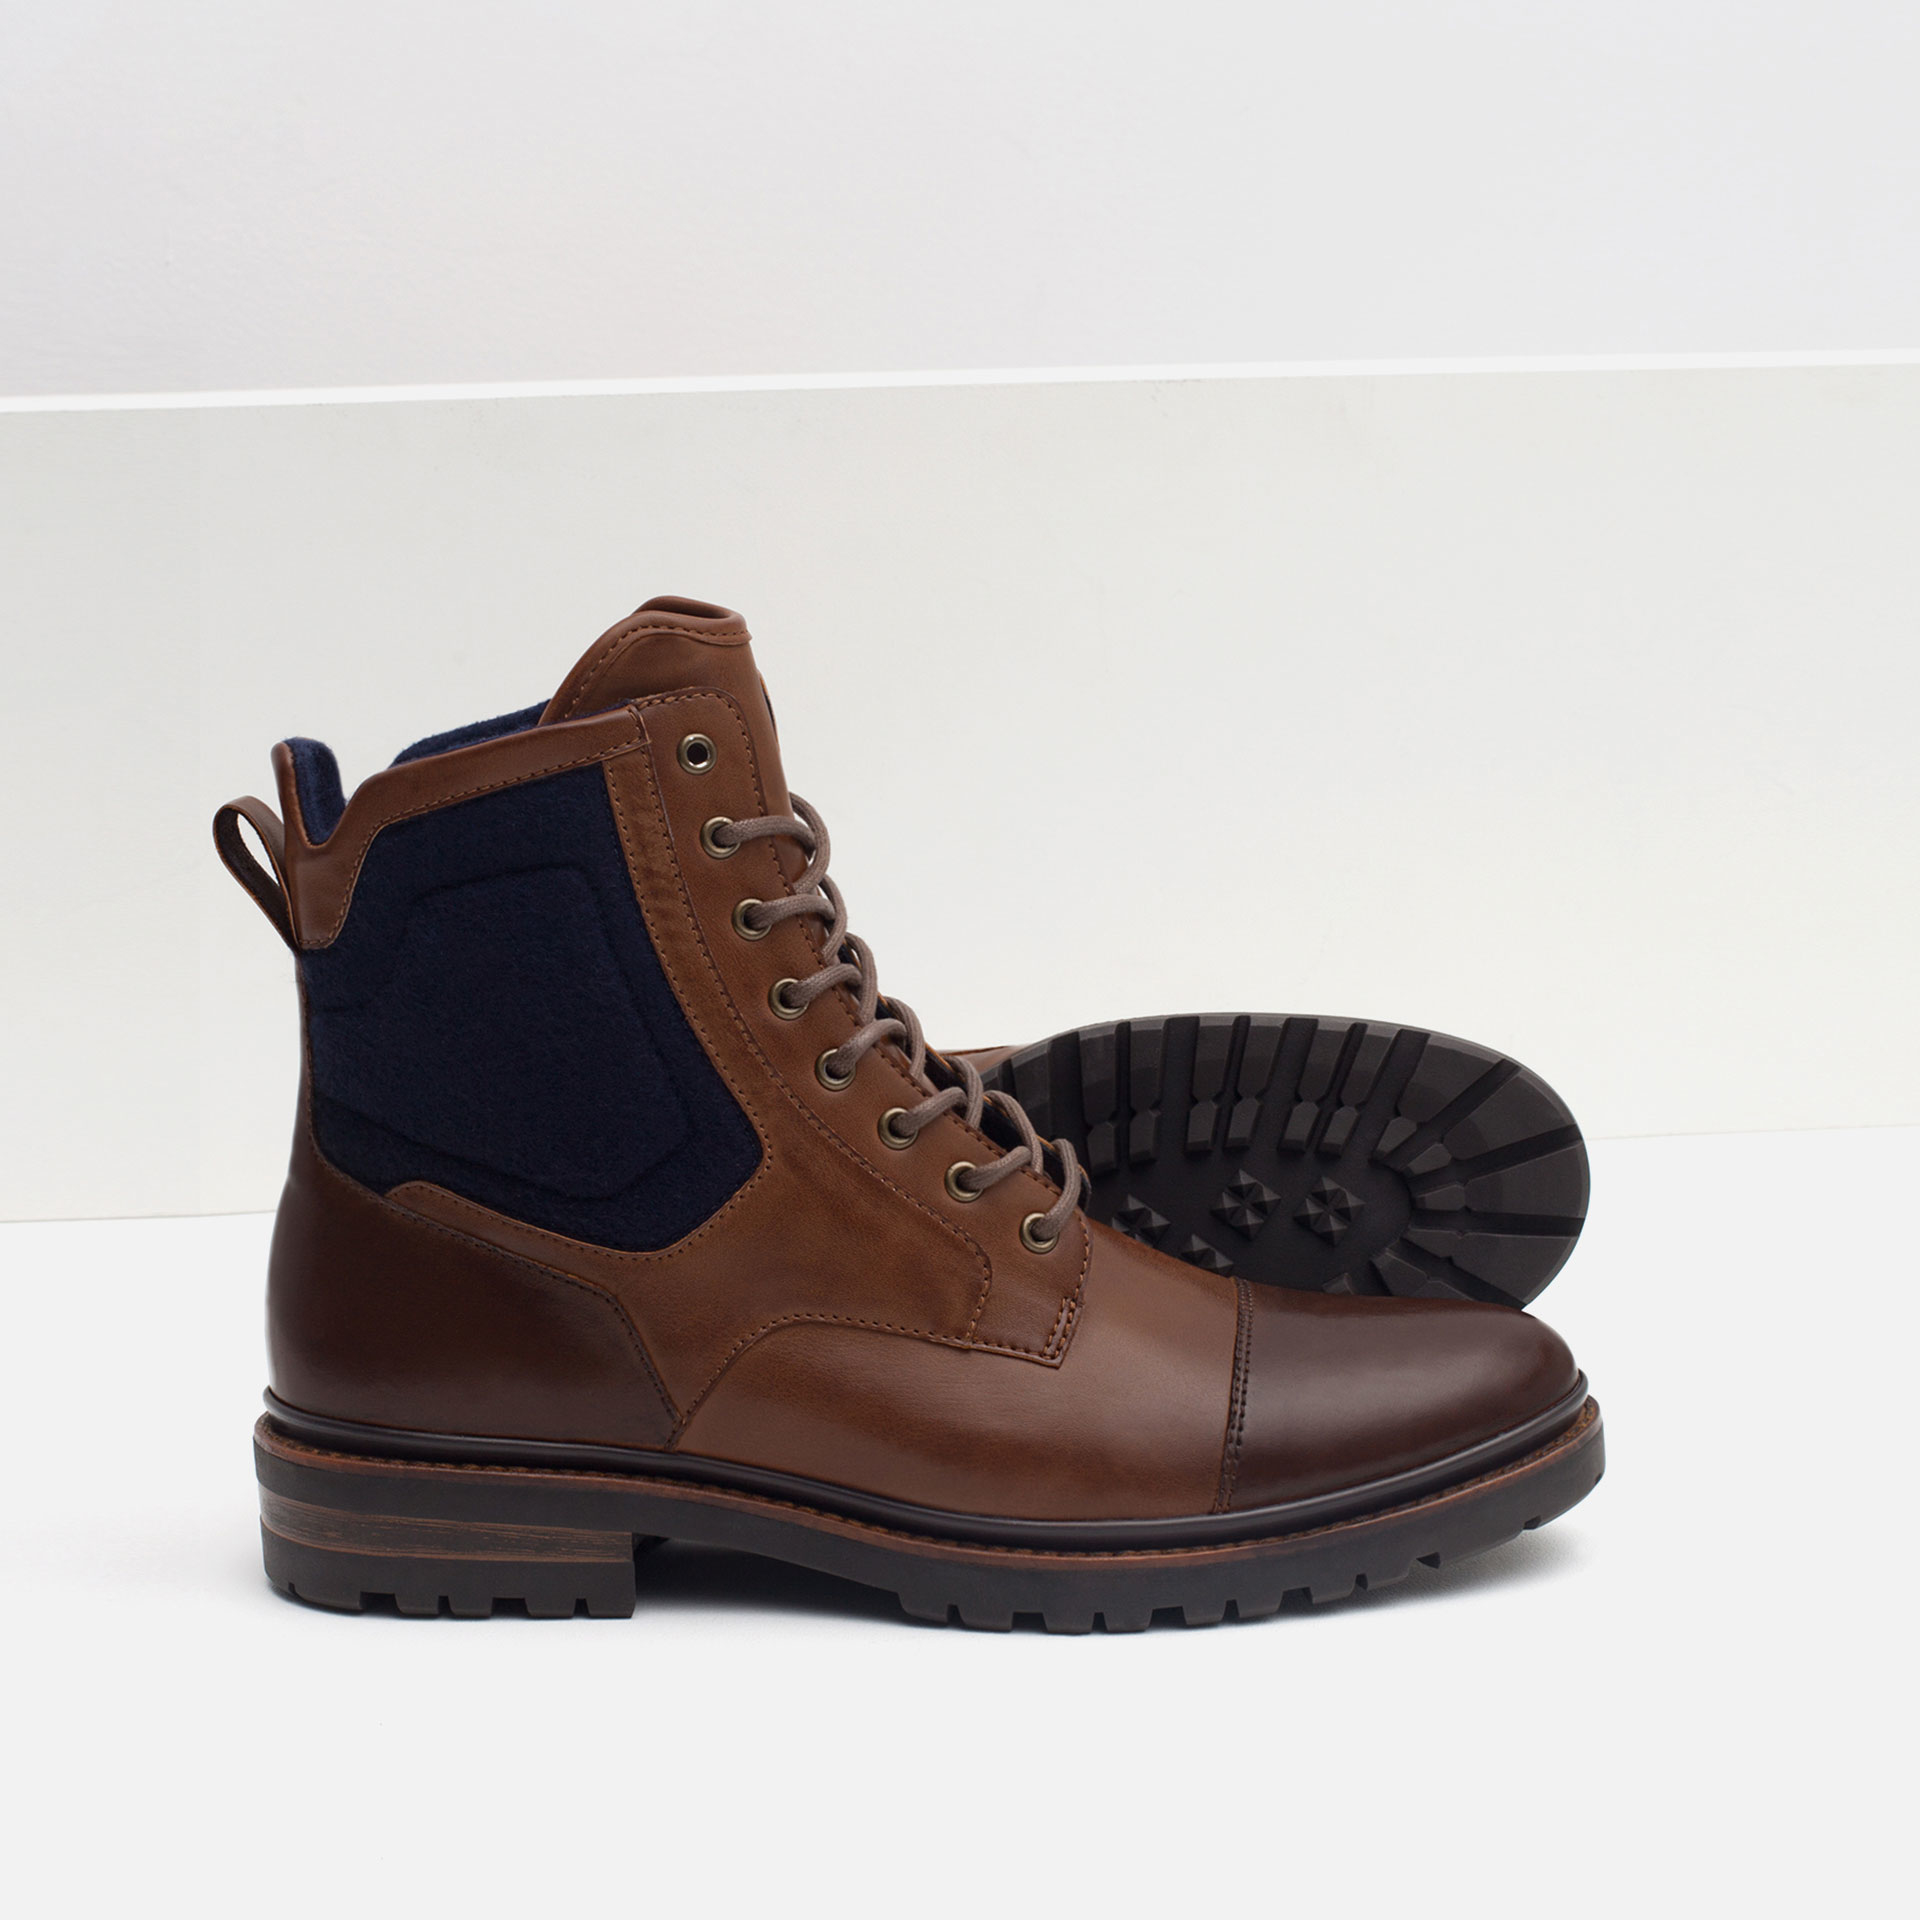 Zara Contrast Boots With Grip Sole In Brown For Men Lyst